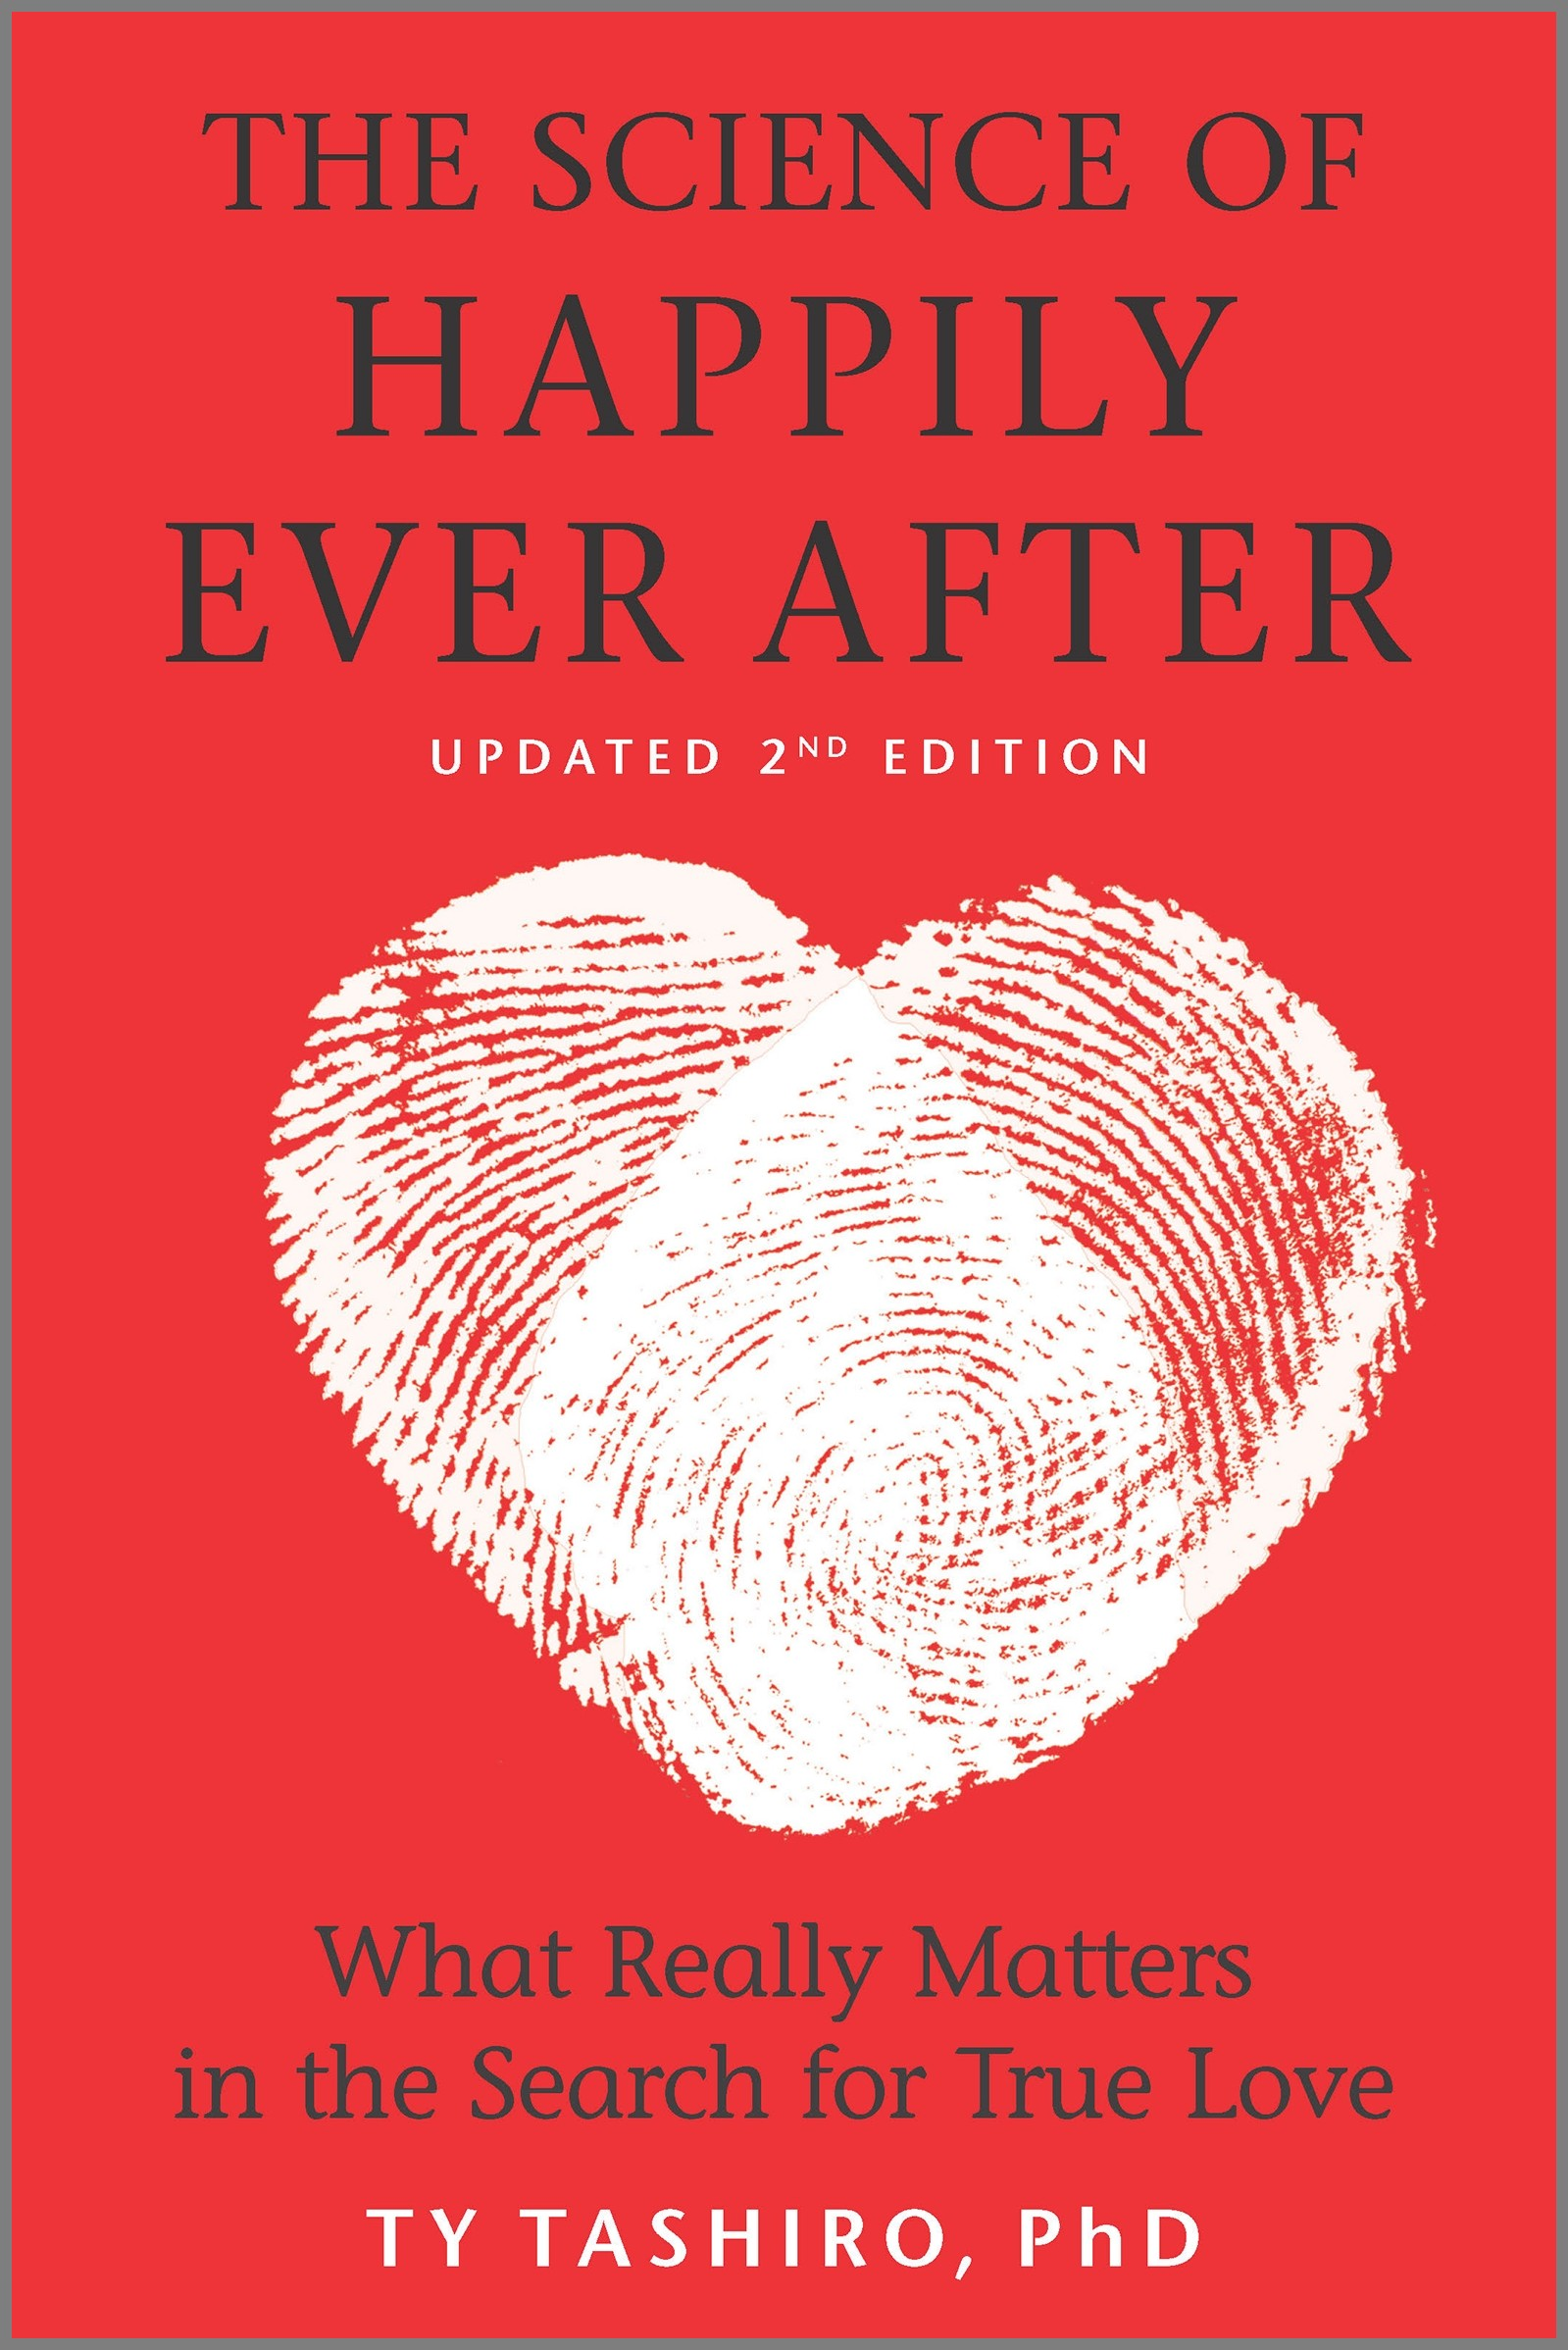 The Science of Happily Ever After What Really Matters in the Quest for Enduring Love